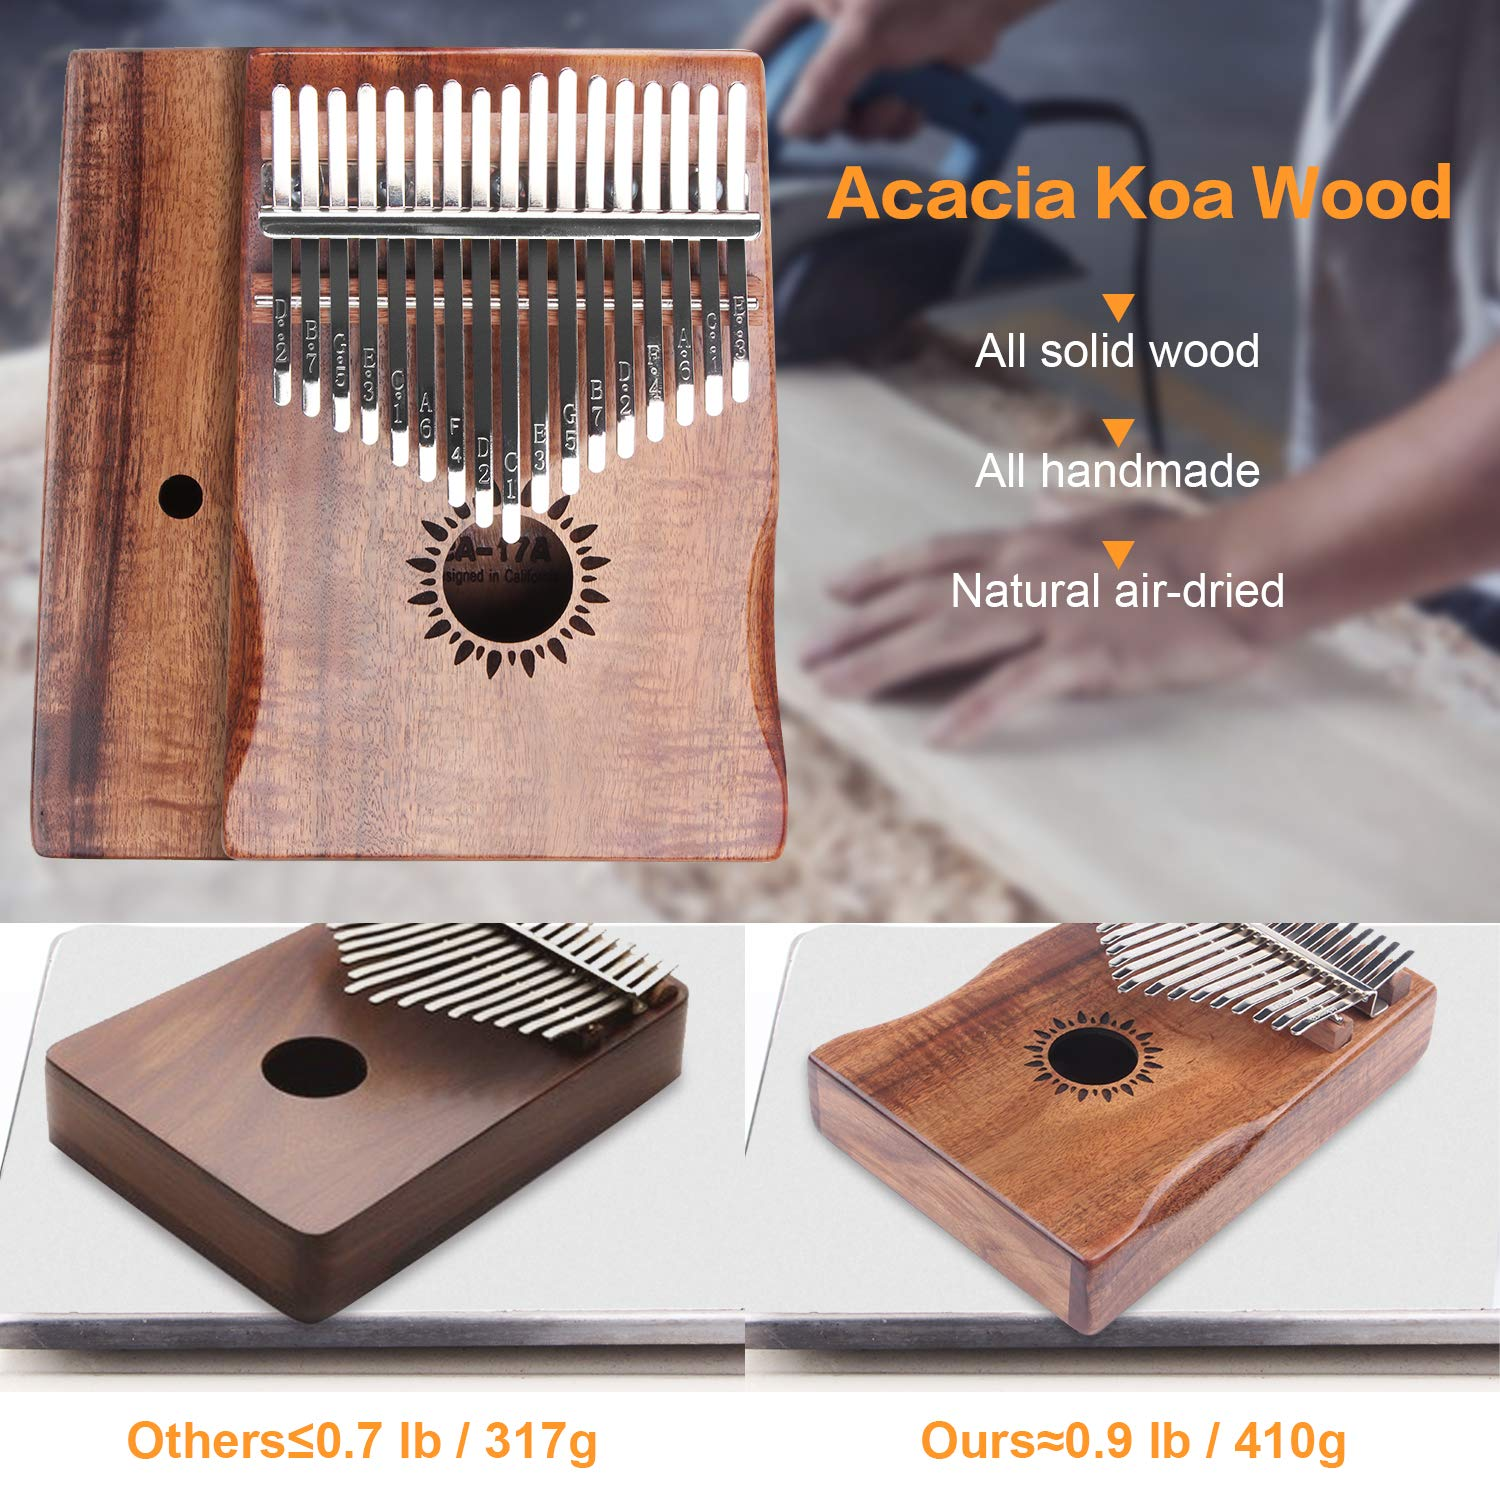 Kalimba Thumb Piano 17 Key, Portable Mbira Wood Finger Piano with 2 Bag and Sheet Music, Gifts for Kids Adult Beginners Professionals by HONHAND (Image #2)